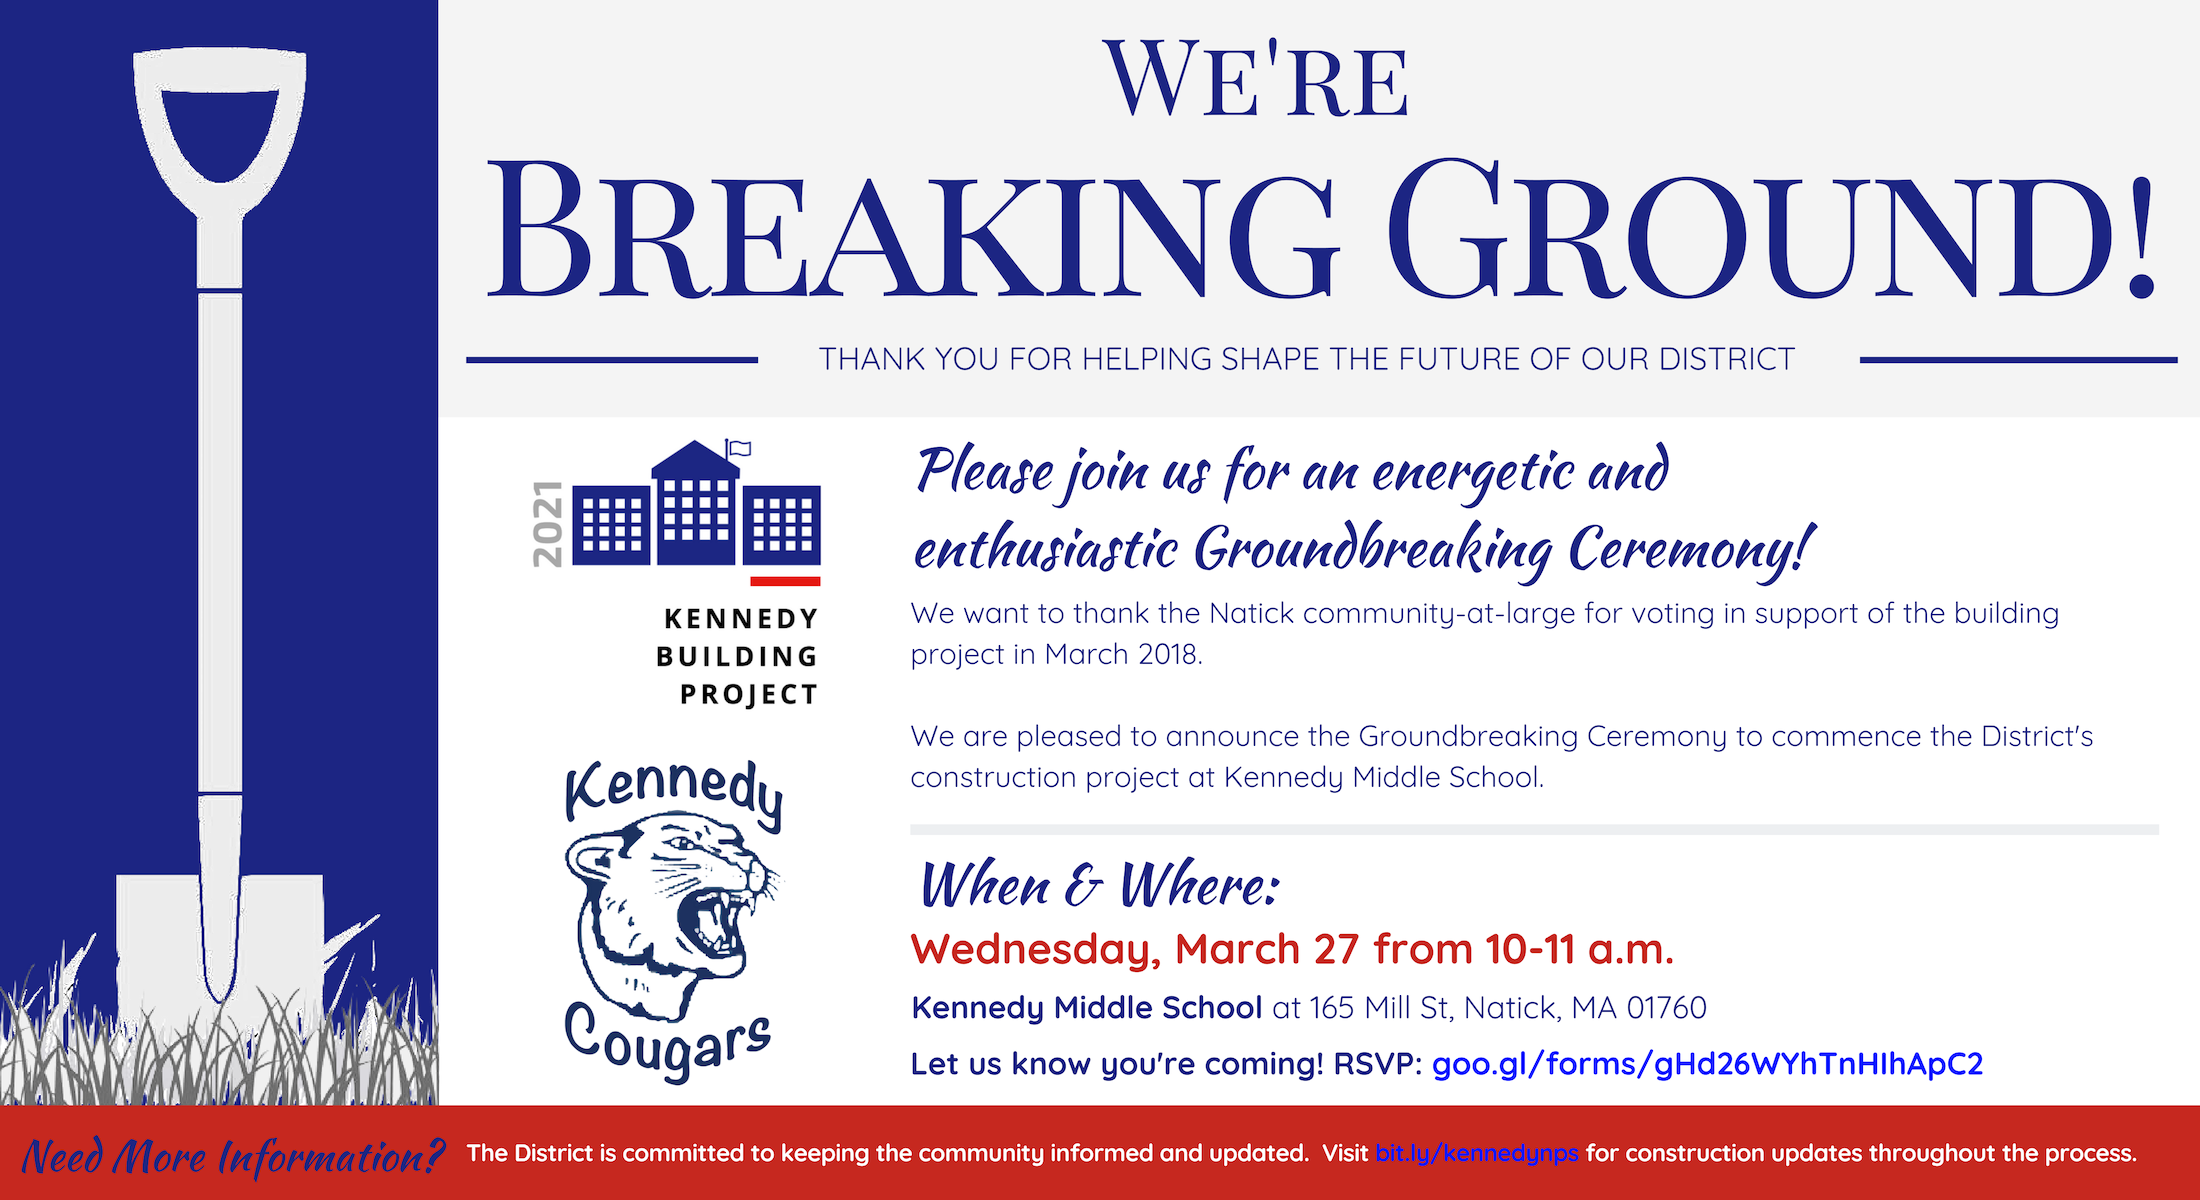 Flyer with info about KMS groundbreaking on March 27th at 10am, Kennedy Middle School in Natick.